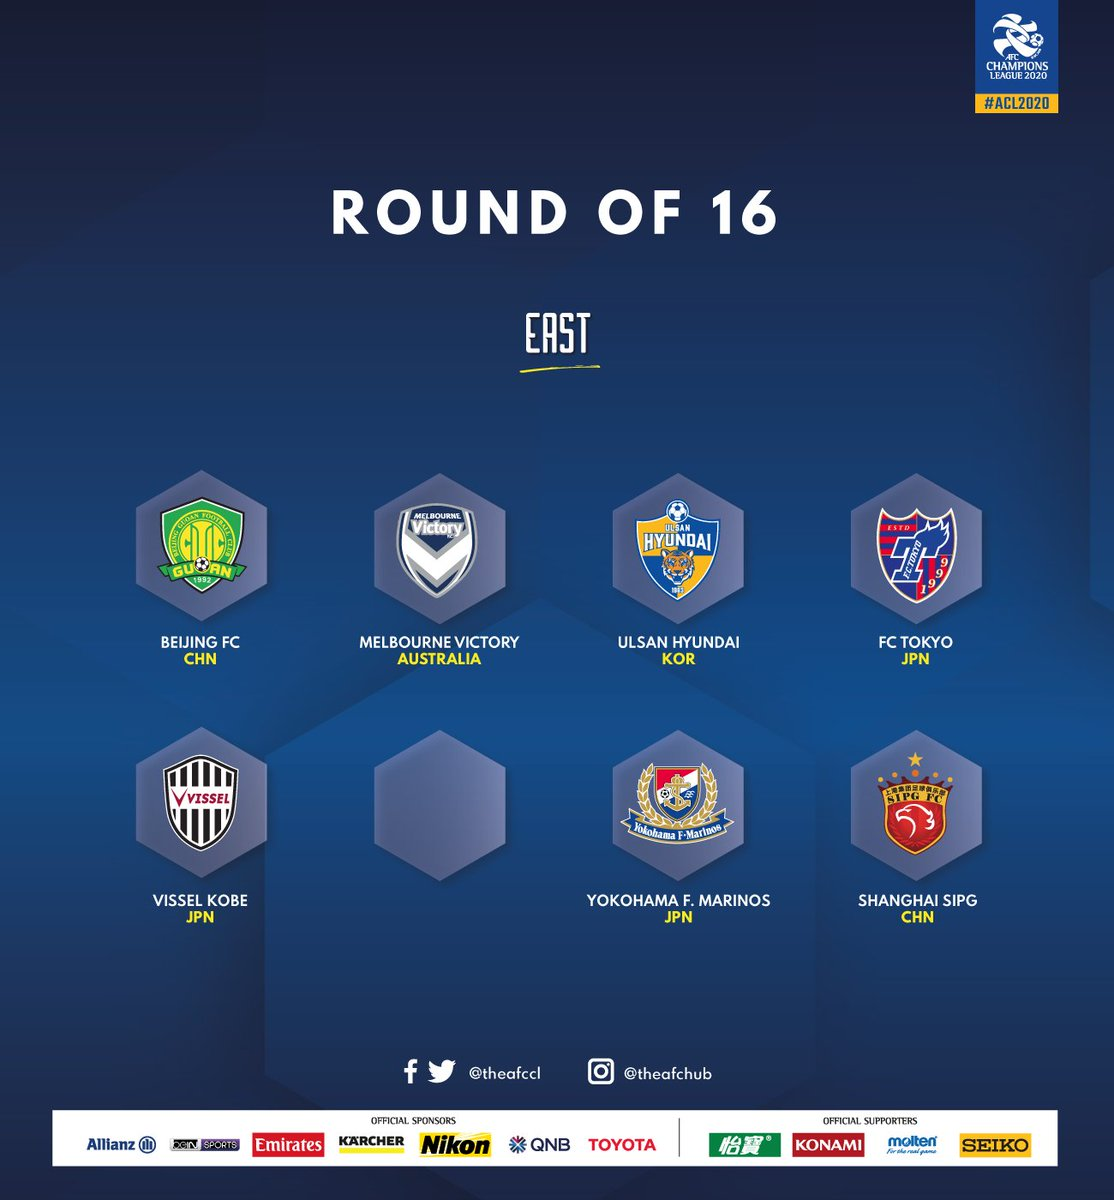 7️⃣  teams are set 🤔  who will be the 8️⃣ th from the East?  #ACL2020